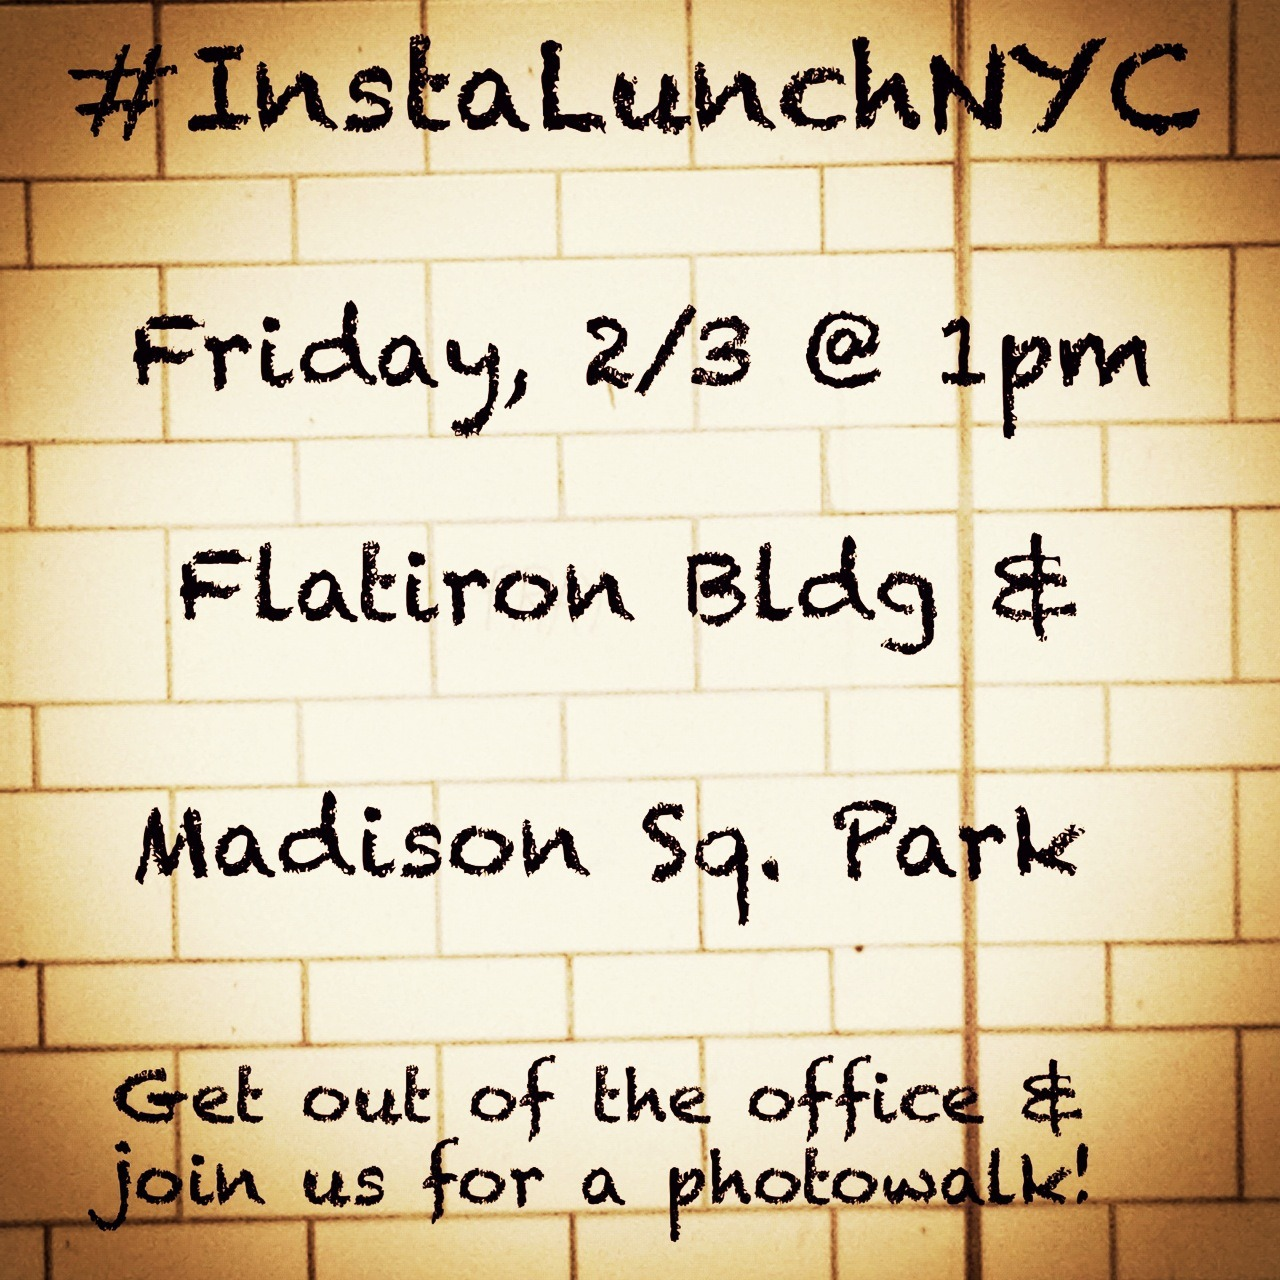 It's another InstagramNYC photowalk! This Friday spend your lunch break meeting, mingling and shooting cool photos with your fellow Instagrammers… Join @LolitaLens and @Jacelinda at 1pm at the Flatiron Building!